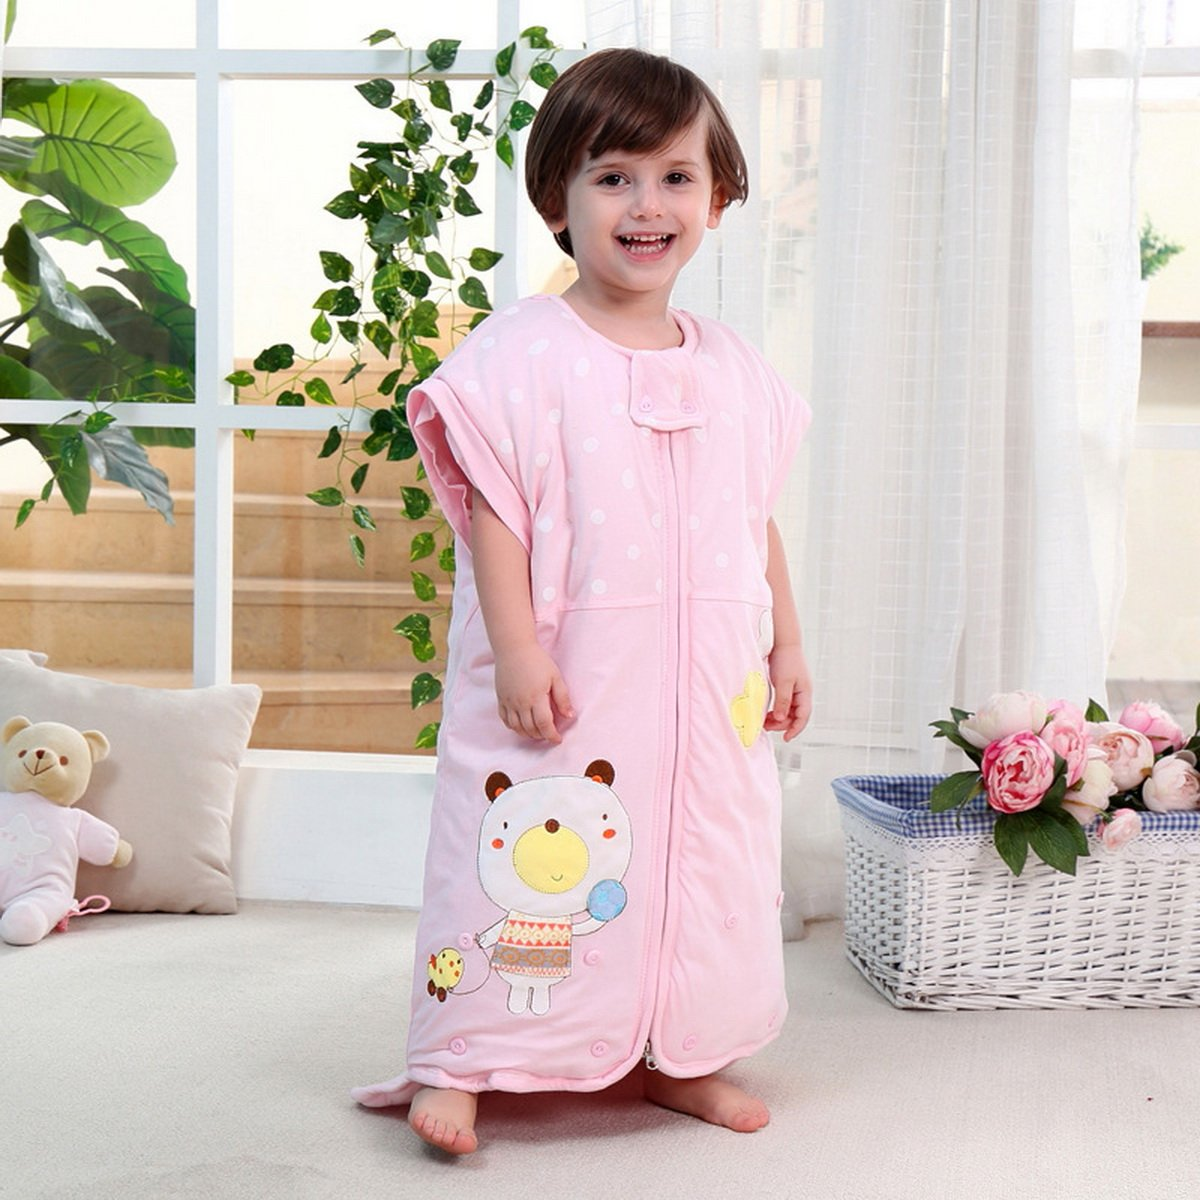 100cm Baby Boy Girl Colored Cotton Soft Winter Thick Sleepsack Sleeping Bag Swaddling Blanket w/ Removable Cap & Sleeves 6~12 Months MOONJOR